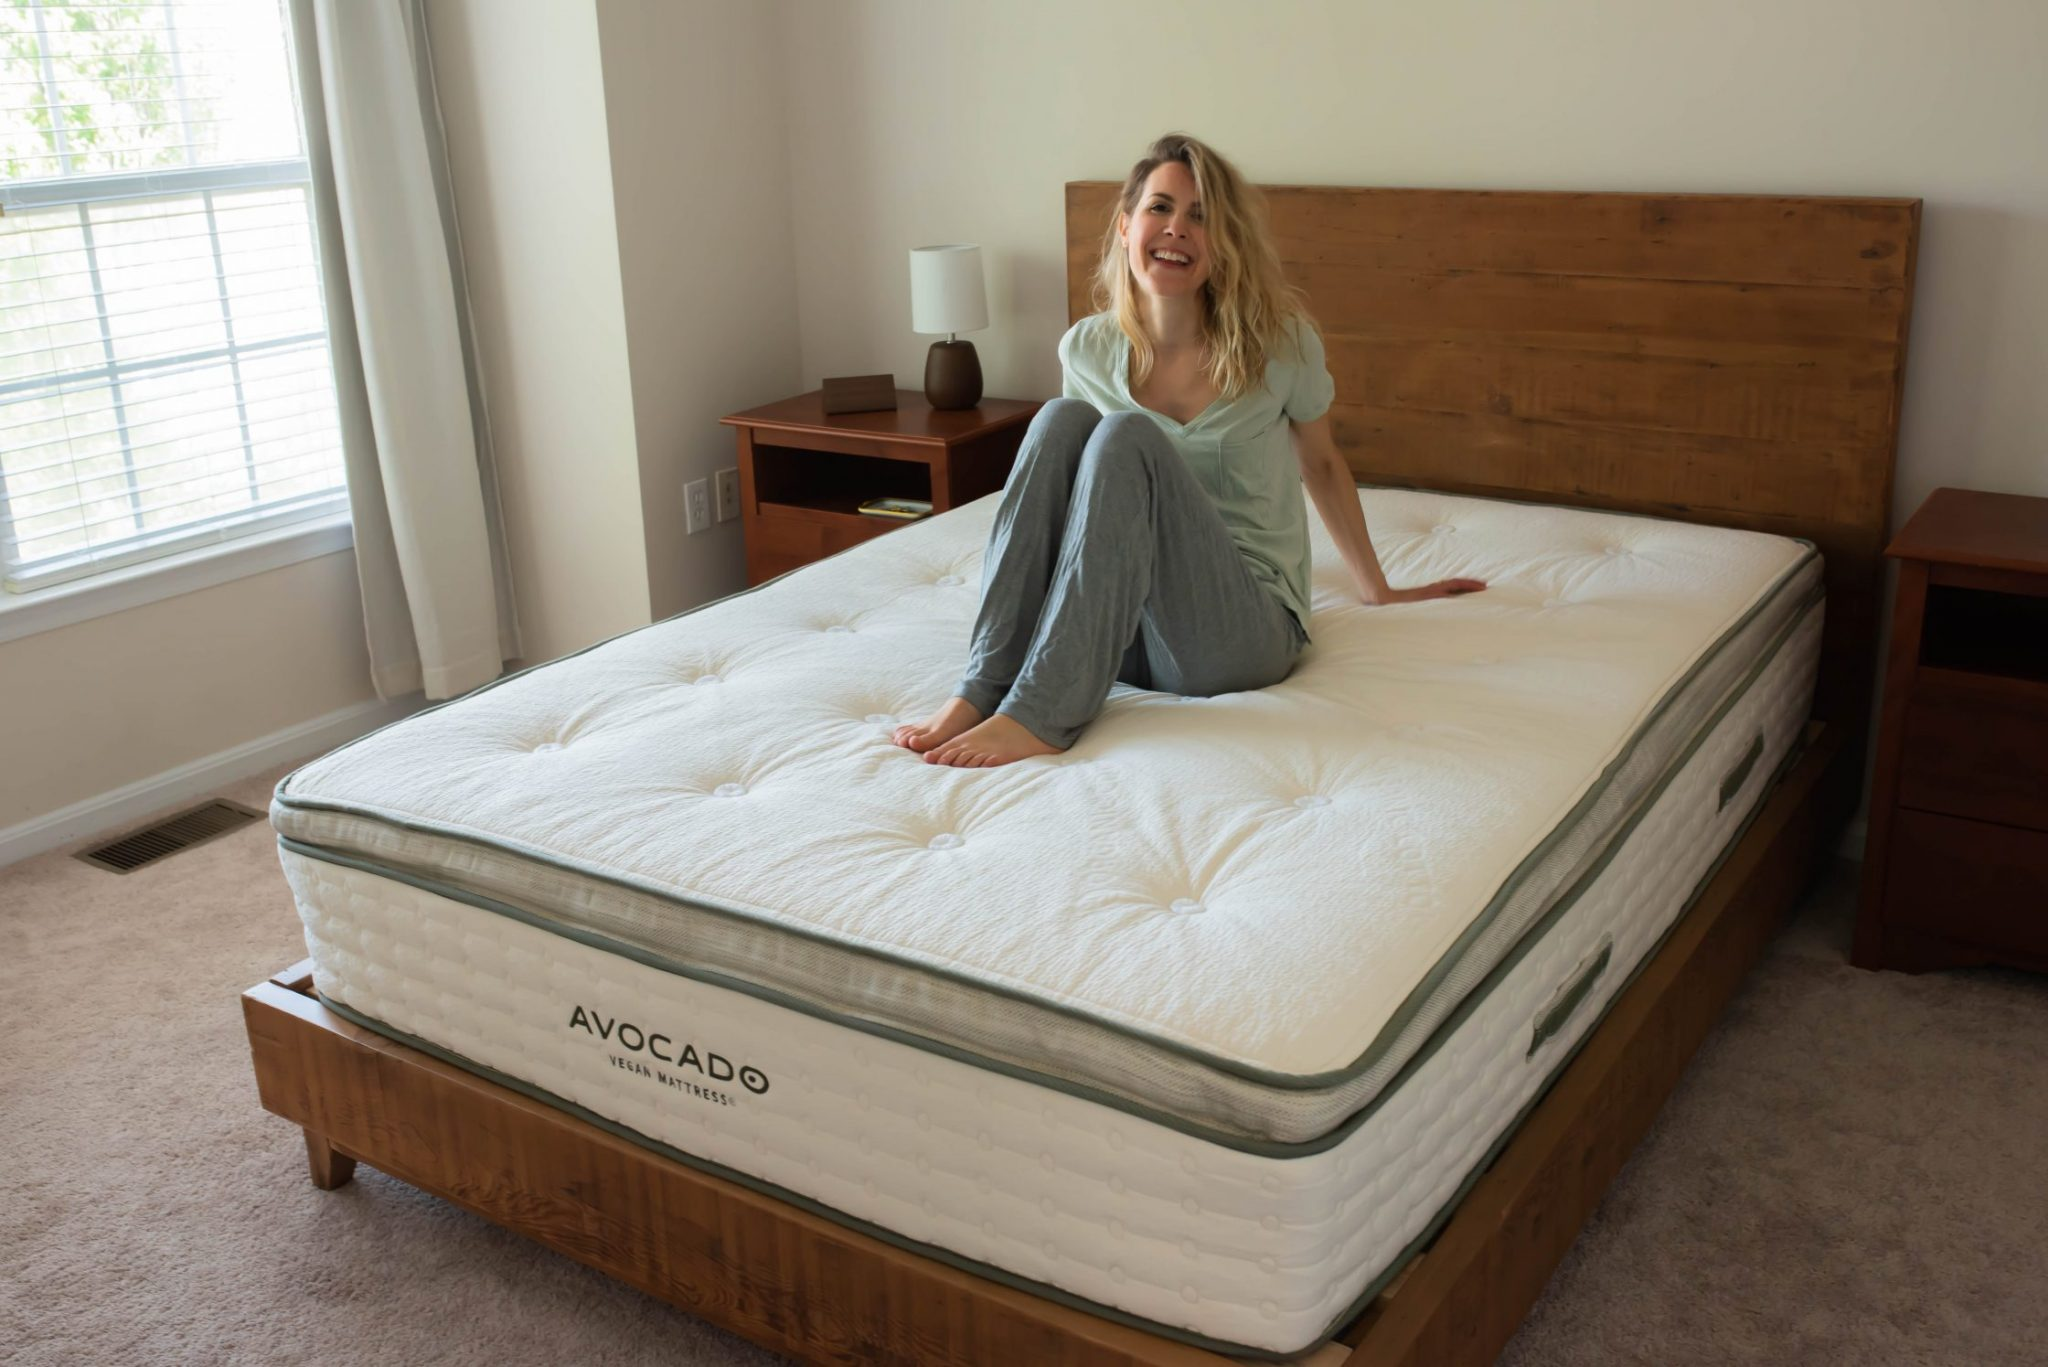 My Avocado Natural Wood Bed Frame by Flora & Vino